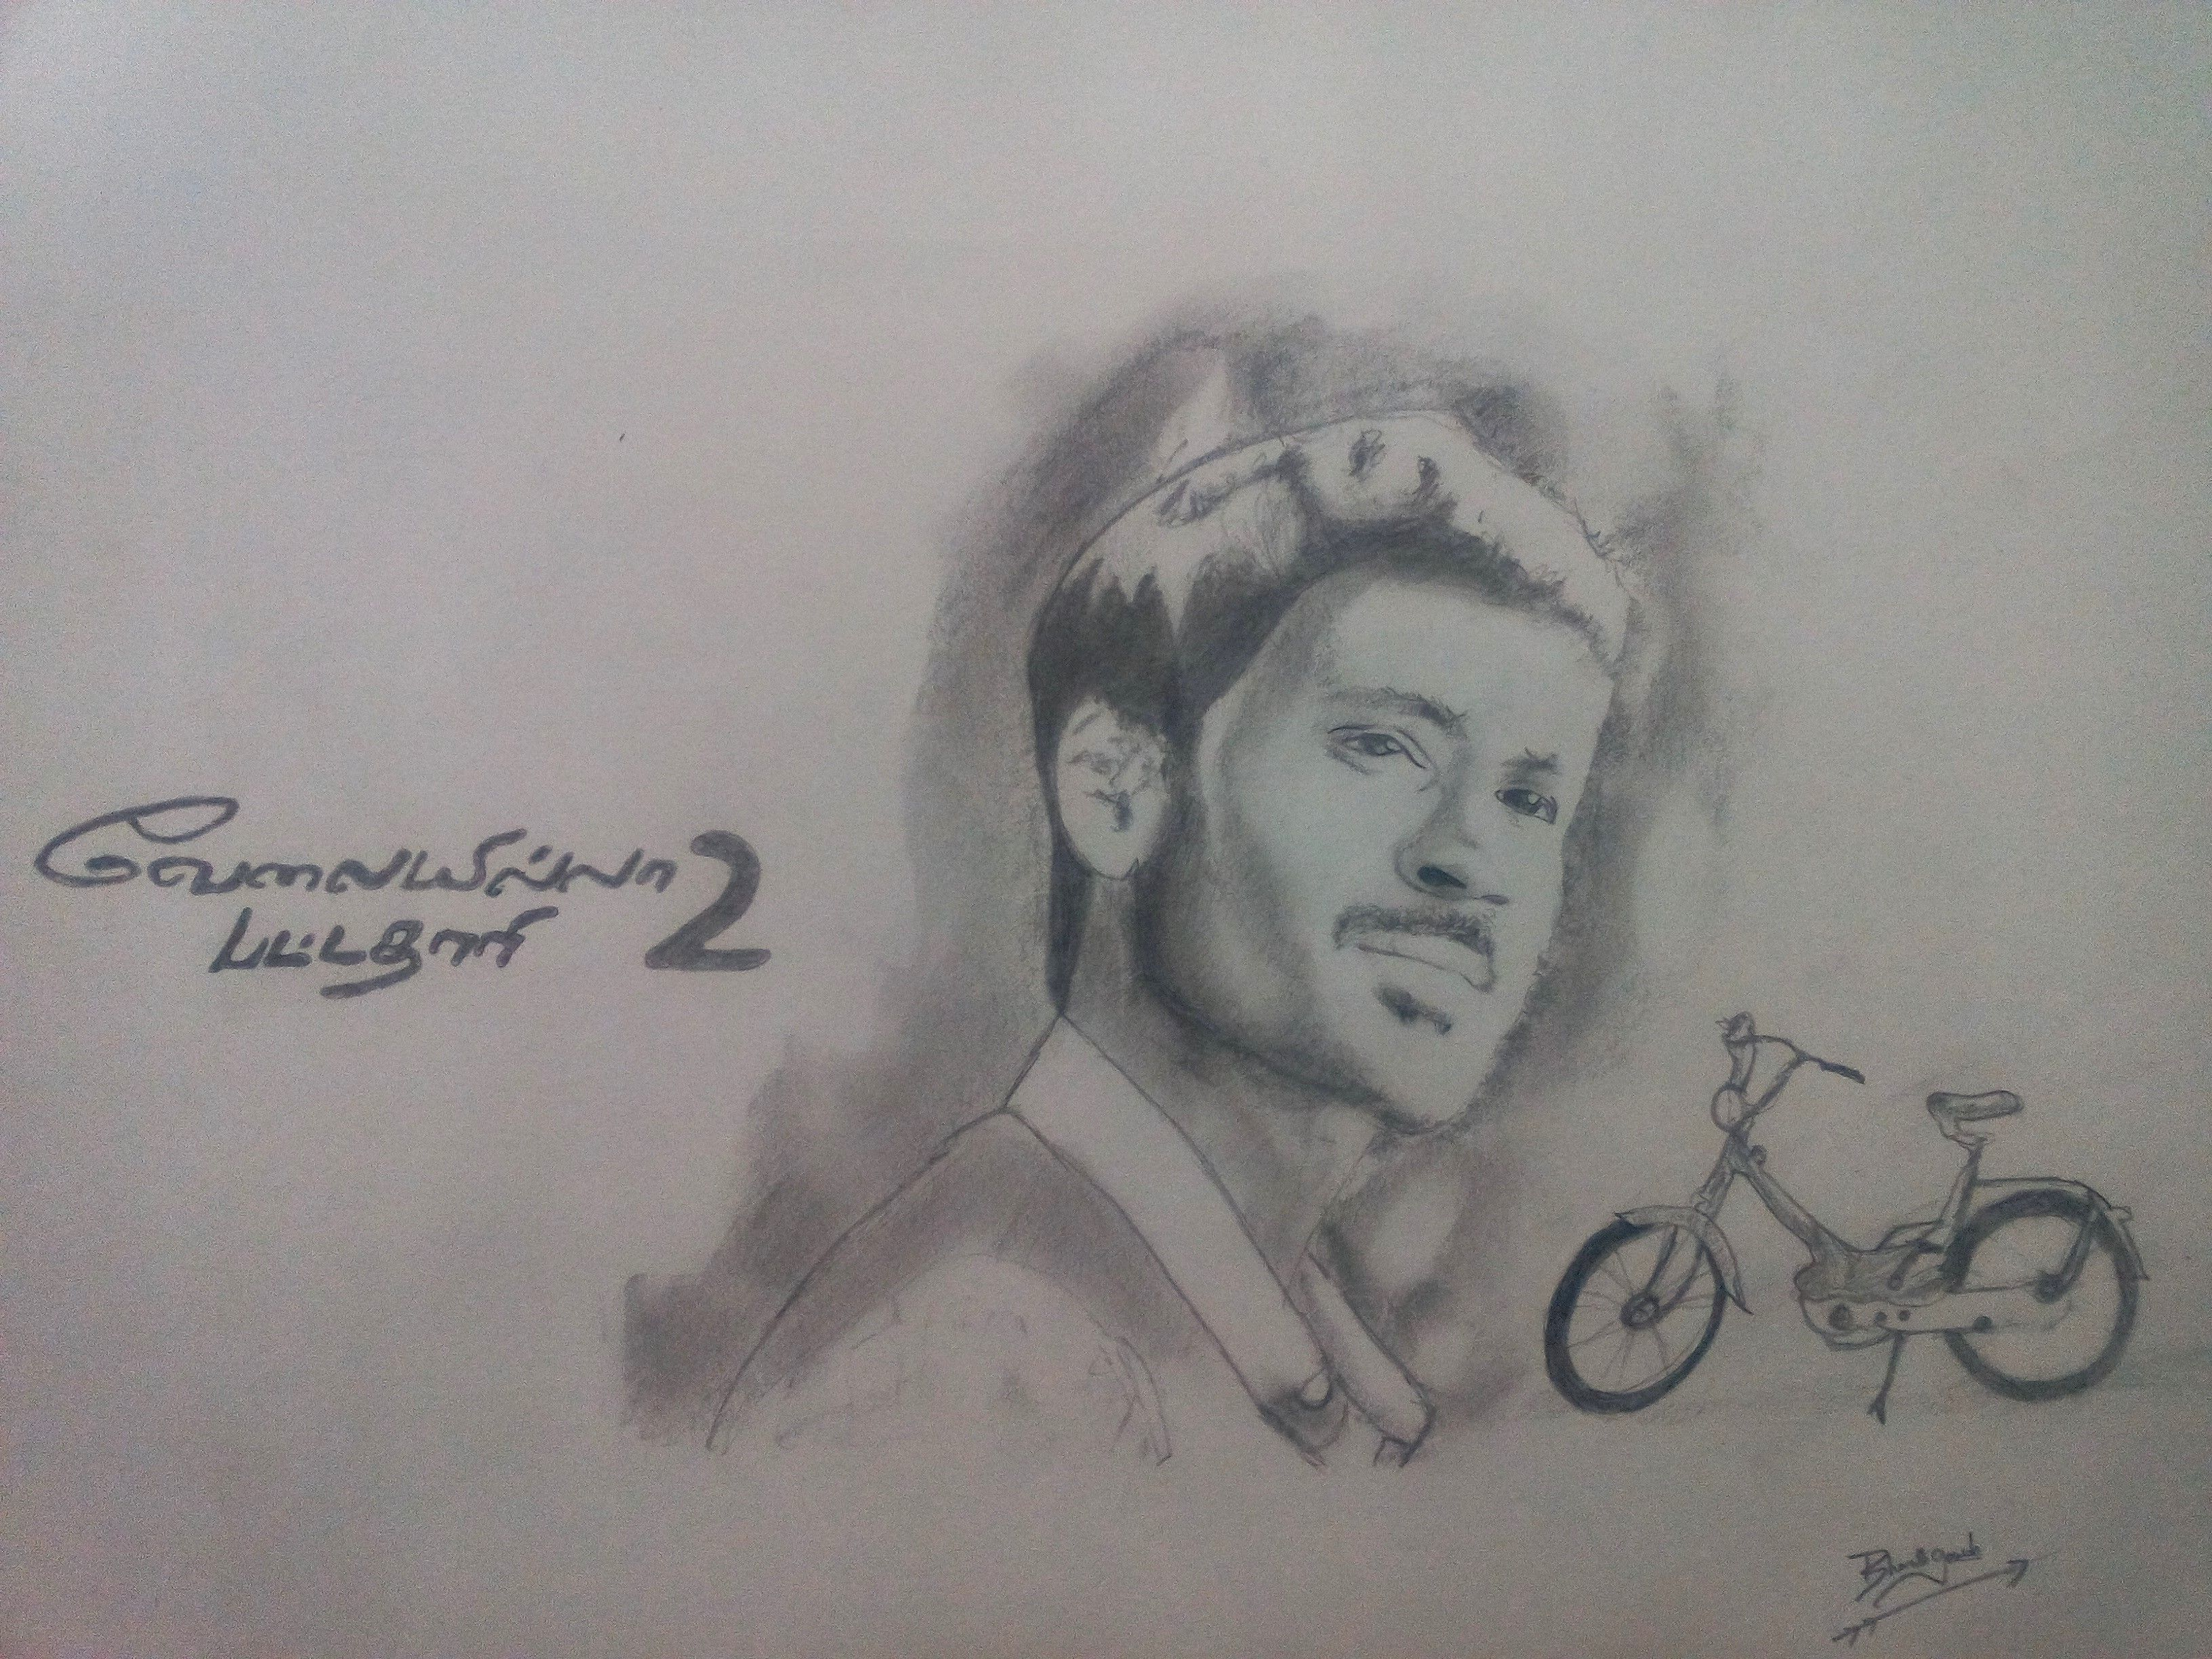 Check out this behance project actor dhanush vip 2 pencil sketch https